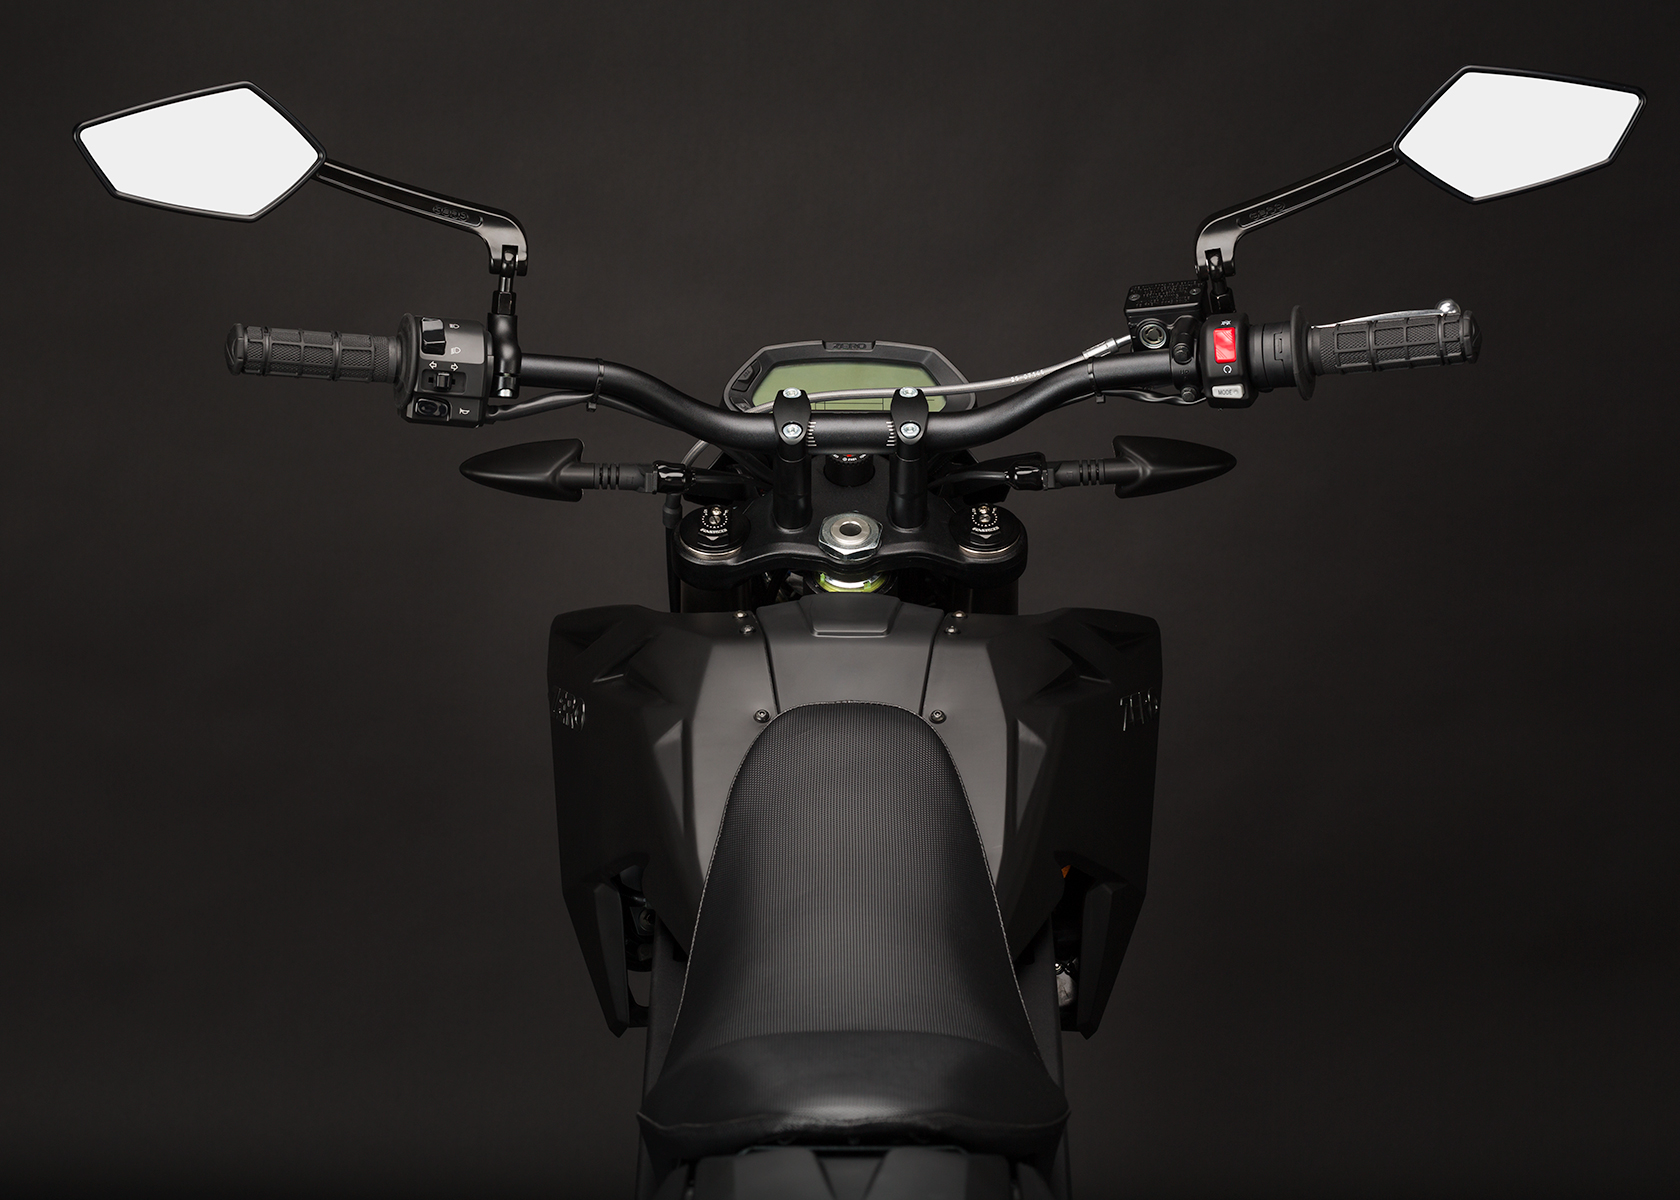 2014 Zero FX Electric Motorcycle: Rider View